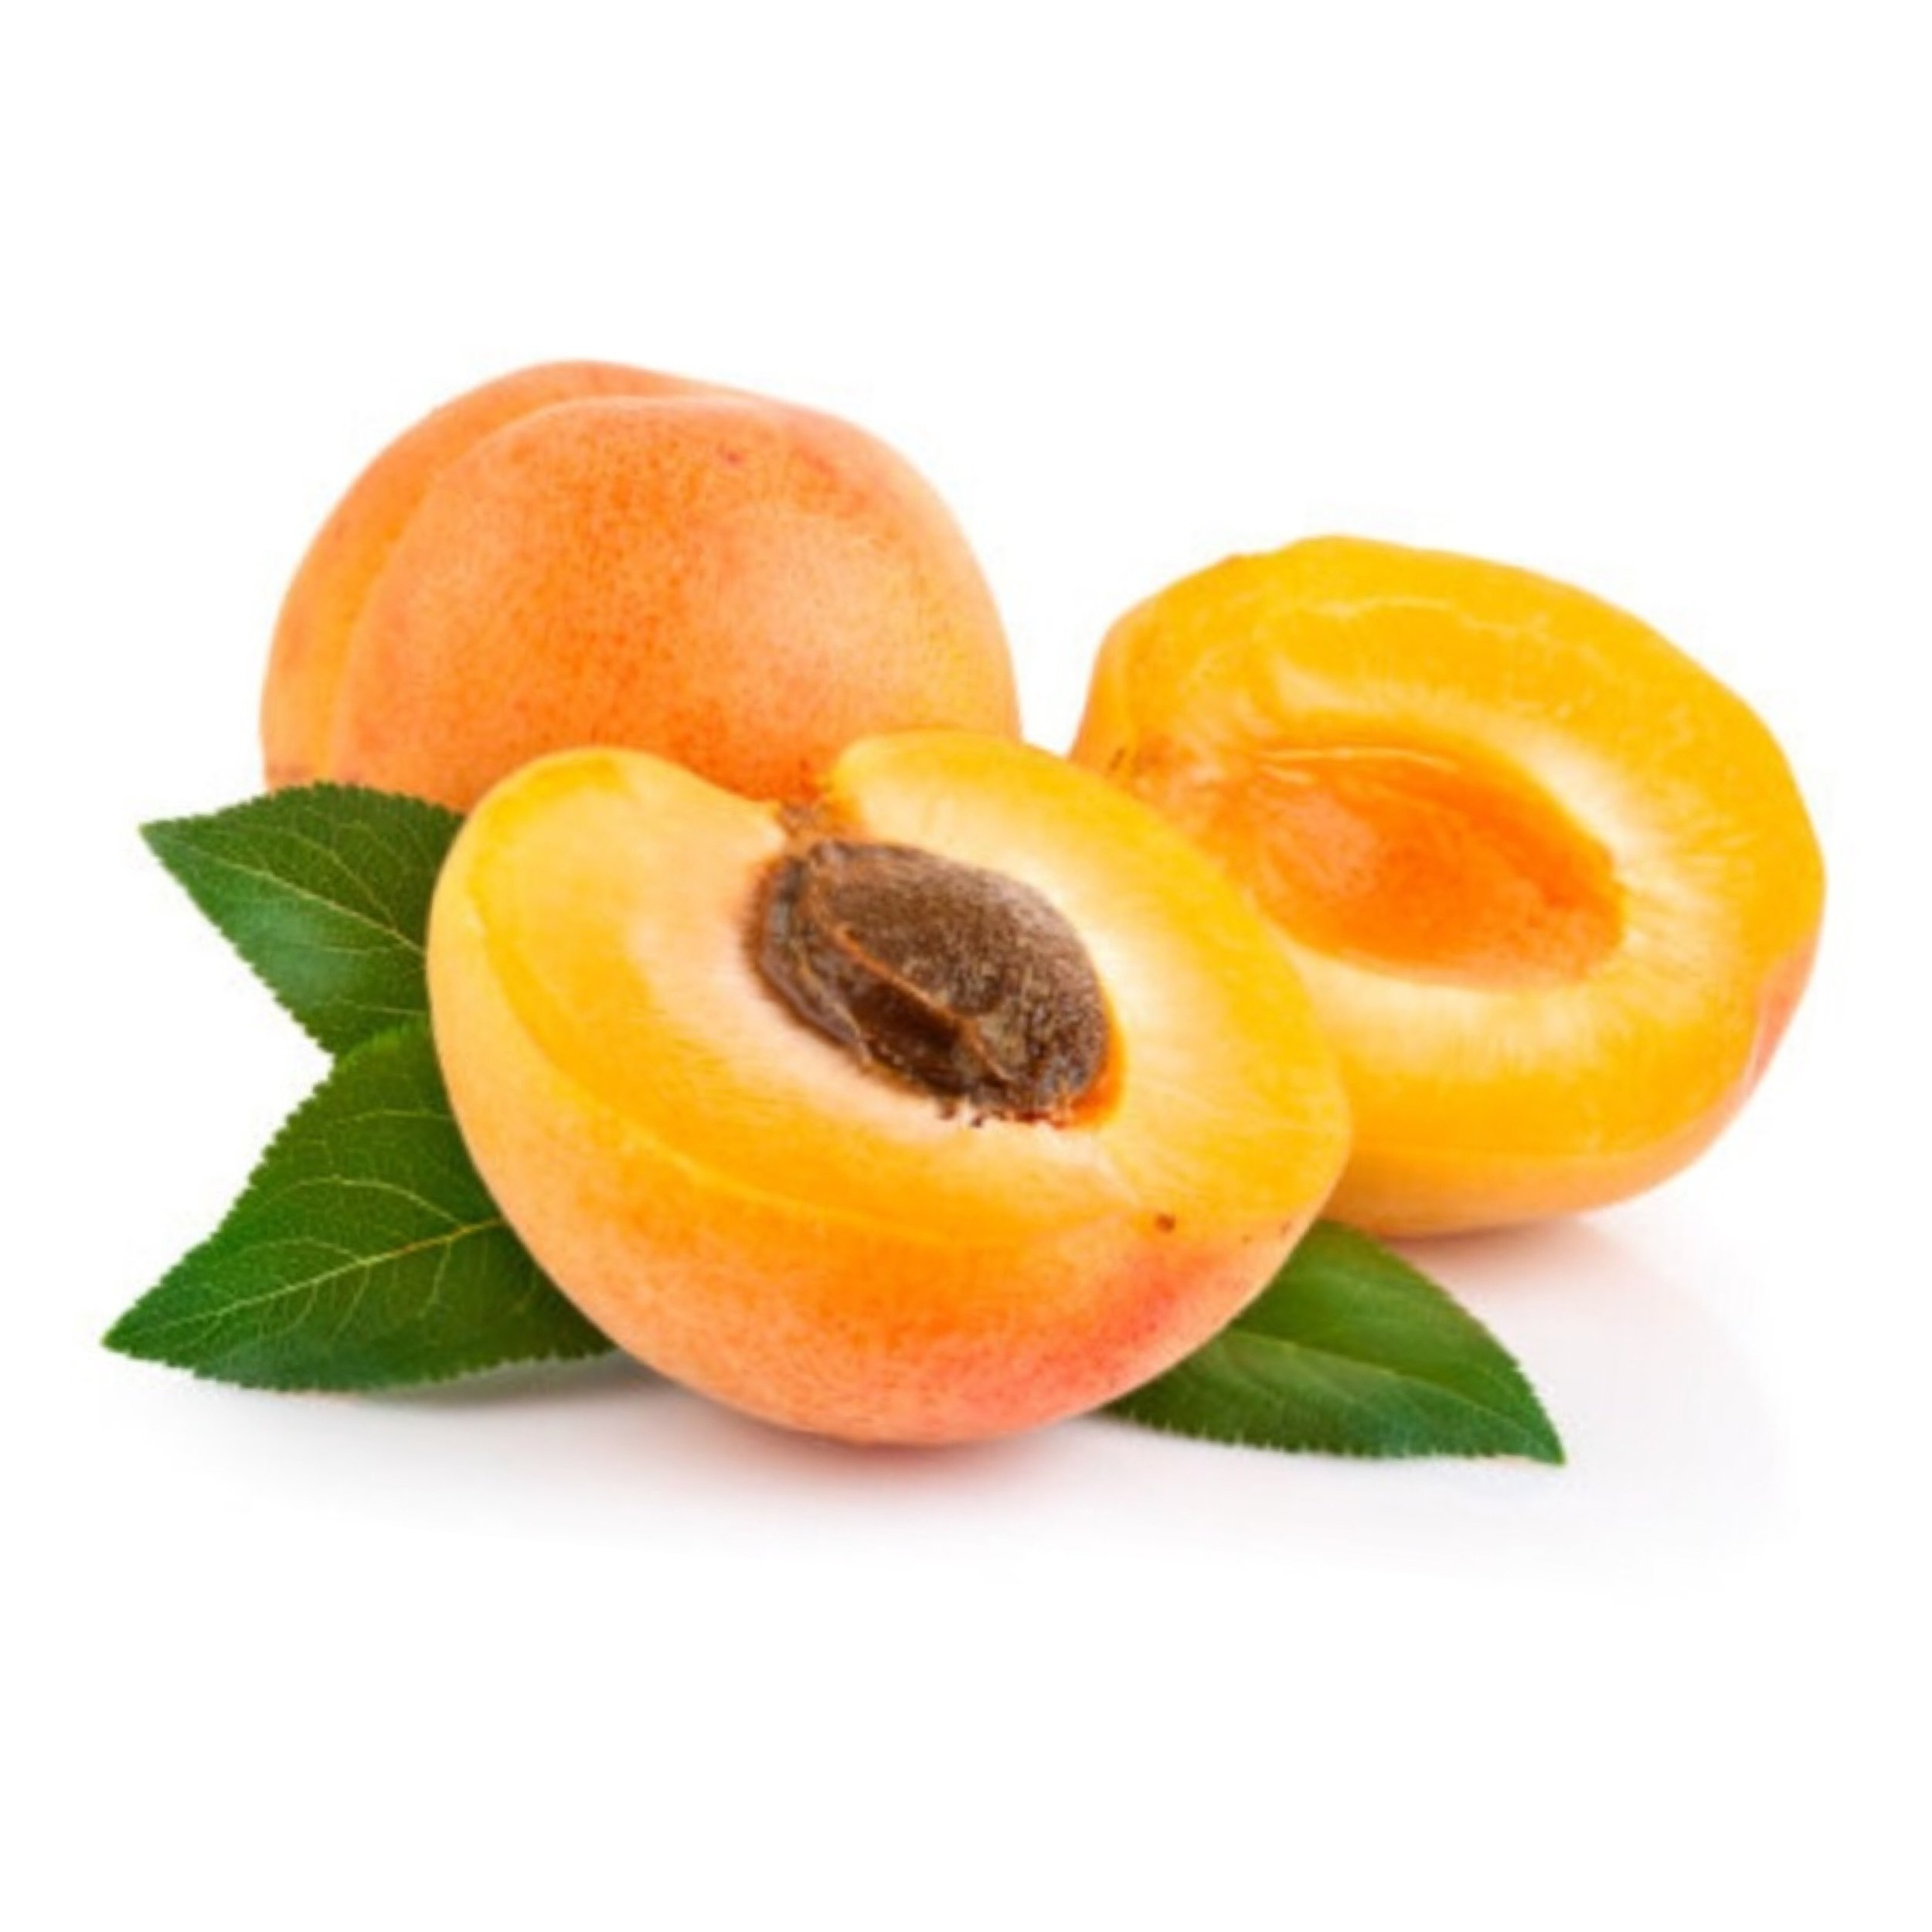 APRICOT KERNEL OIL   Excellent anti-inflammatory and anti-bacterial. The high antioxidant content in apricot kernel oil make it great for protecting the skin from free radicals.